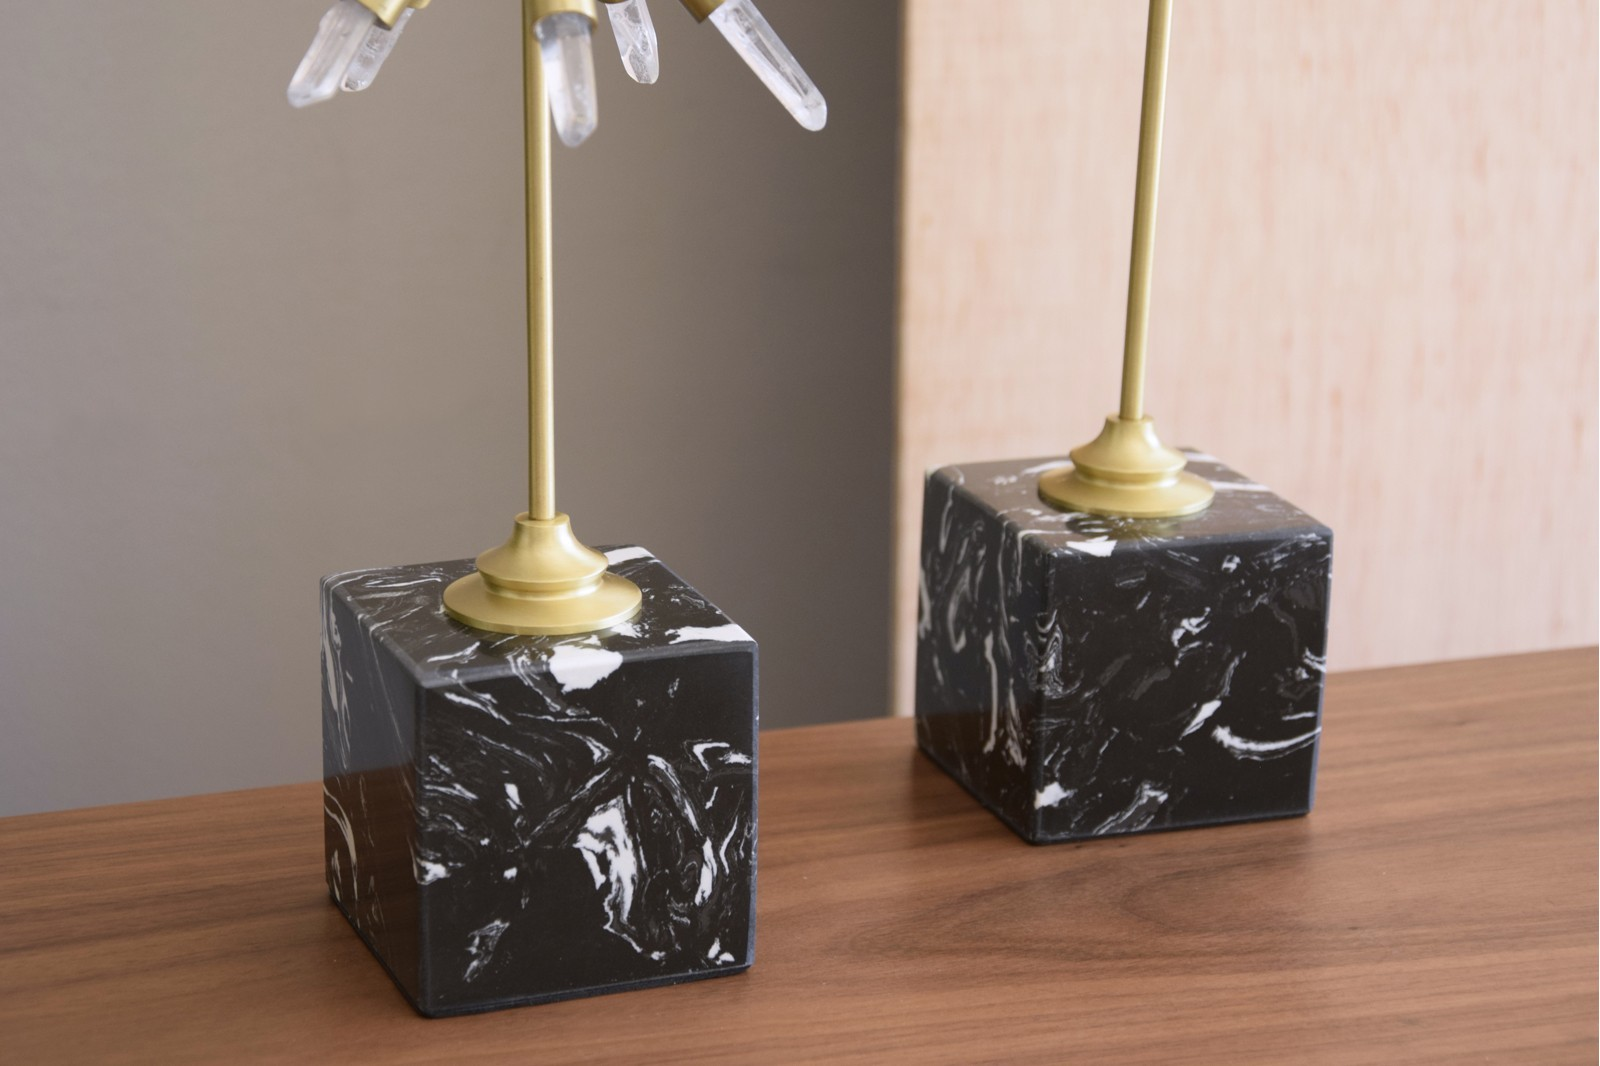 EXPLOSION COLLECTION. CRYSTAL, METAL AND MARBLE SCULPTURE